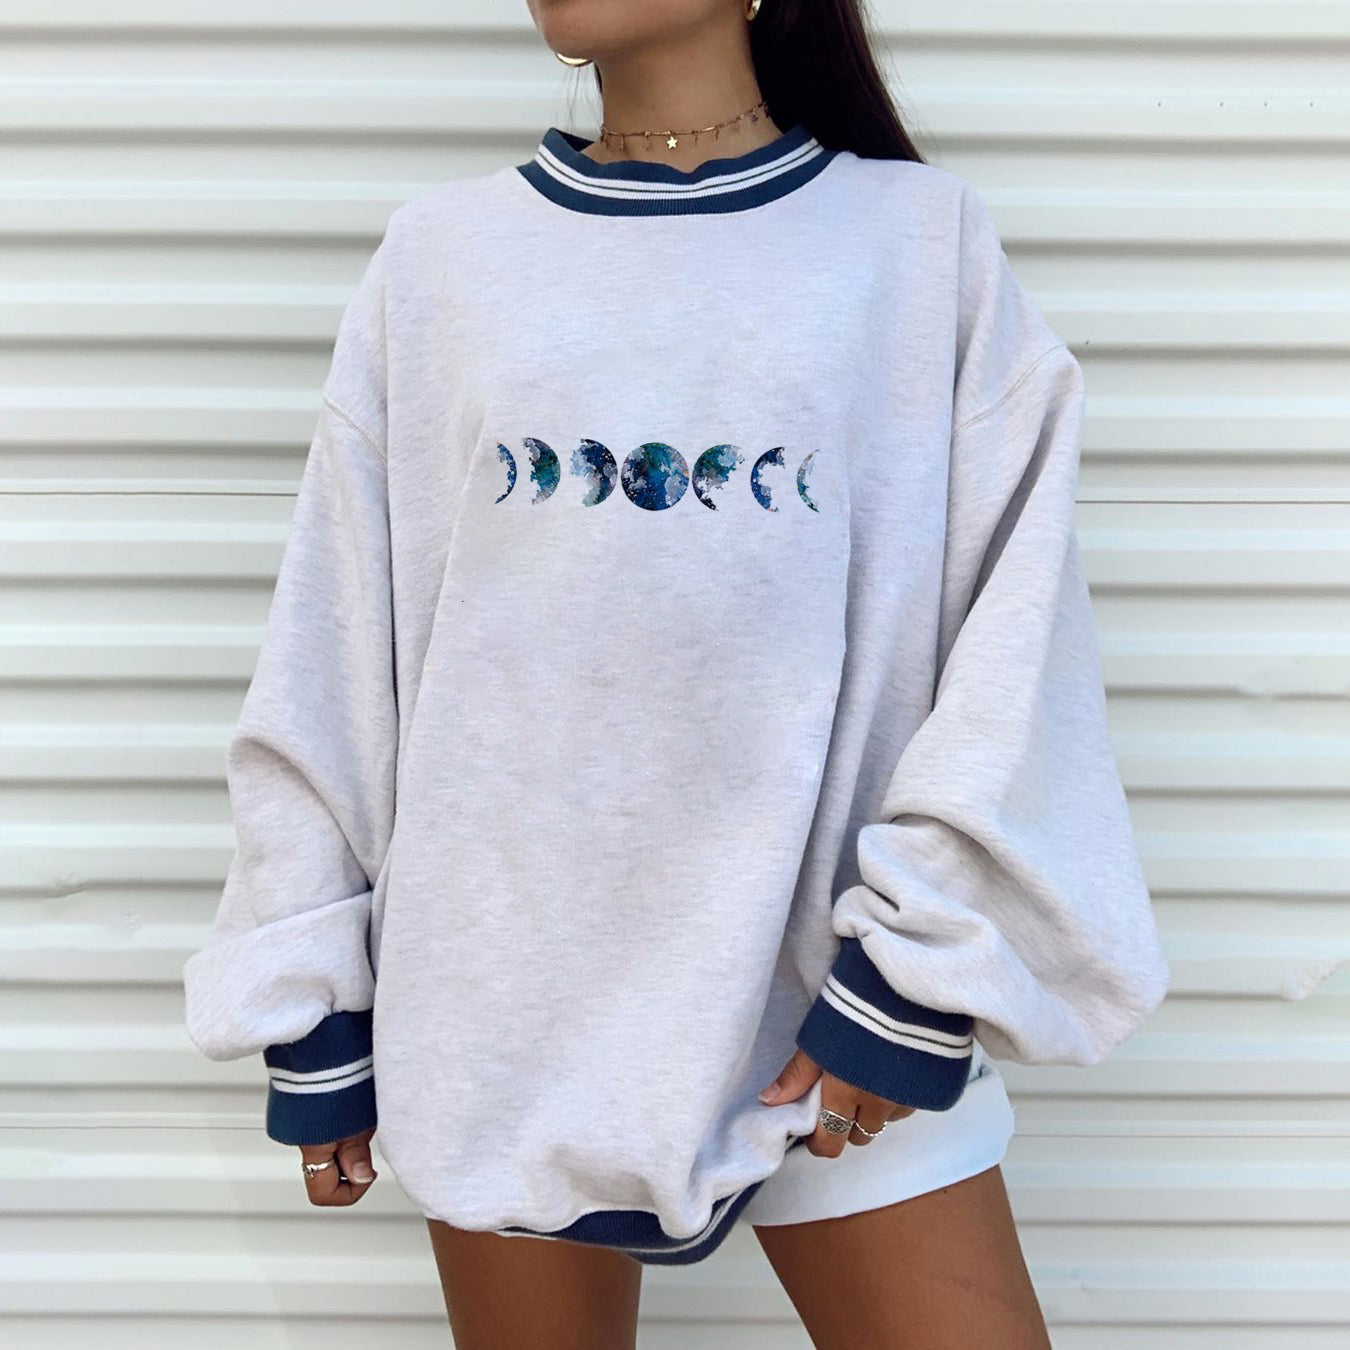 Casual Vintage Loose Sweatshirts